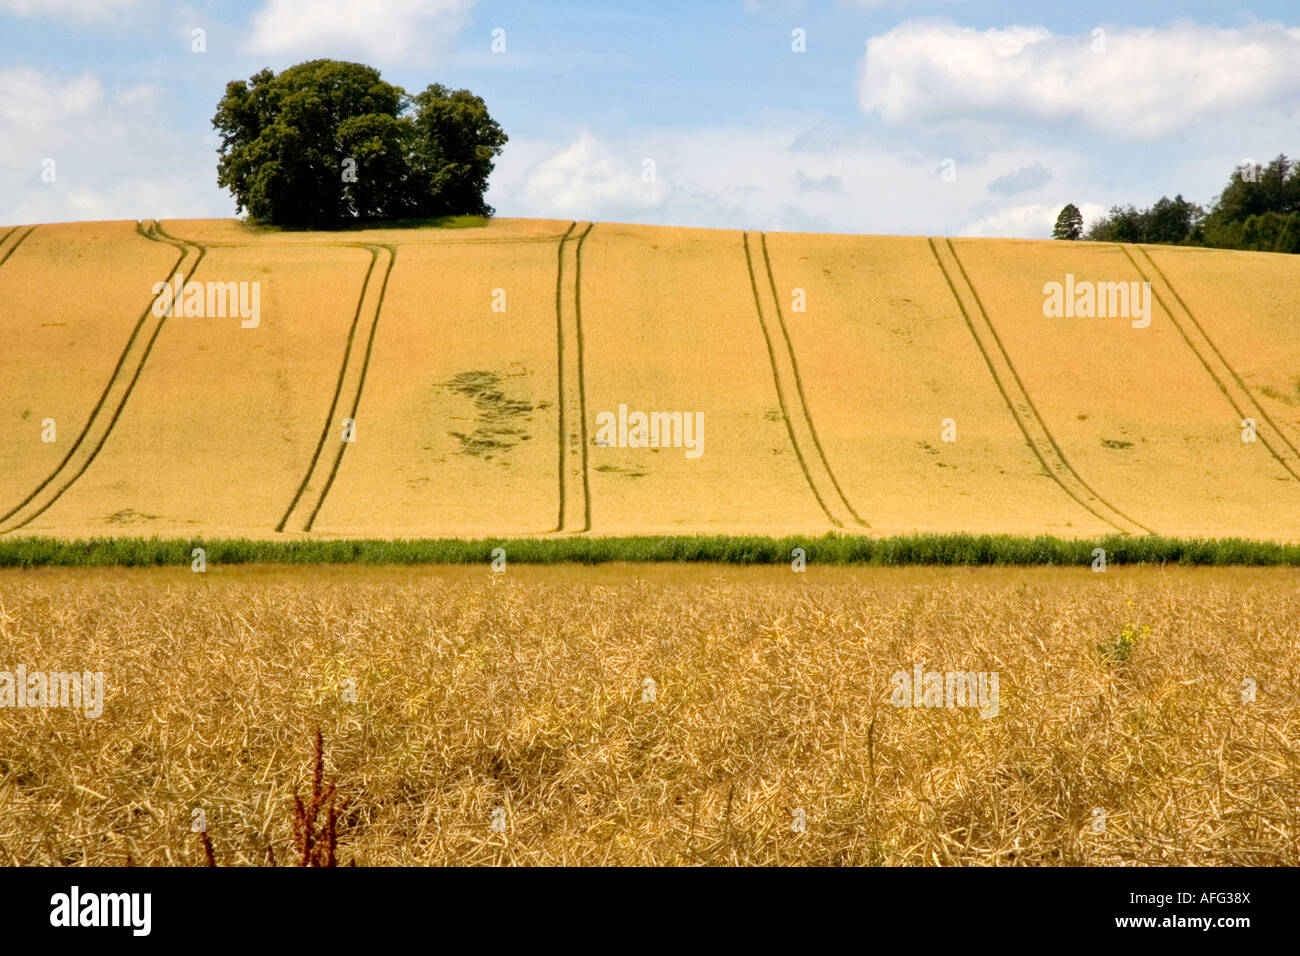 Fields ready for harvest - Stock Image